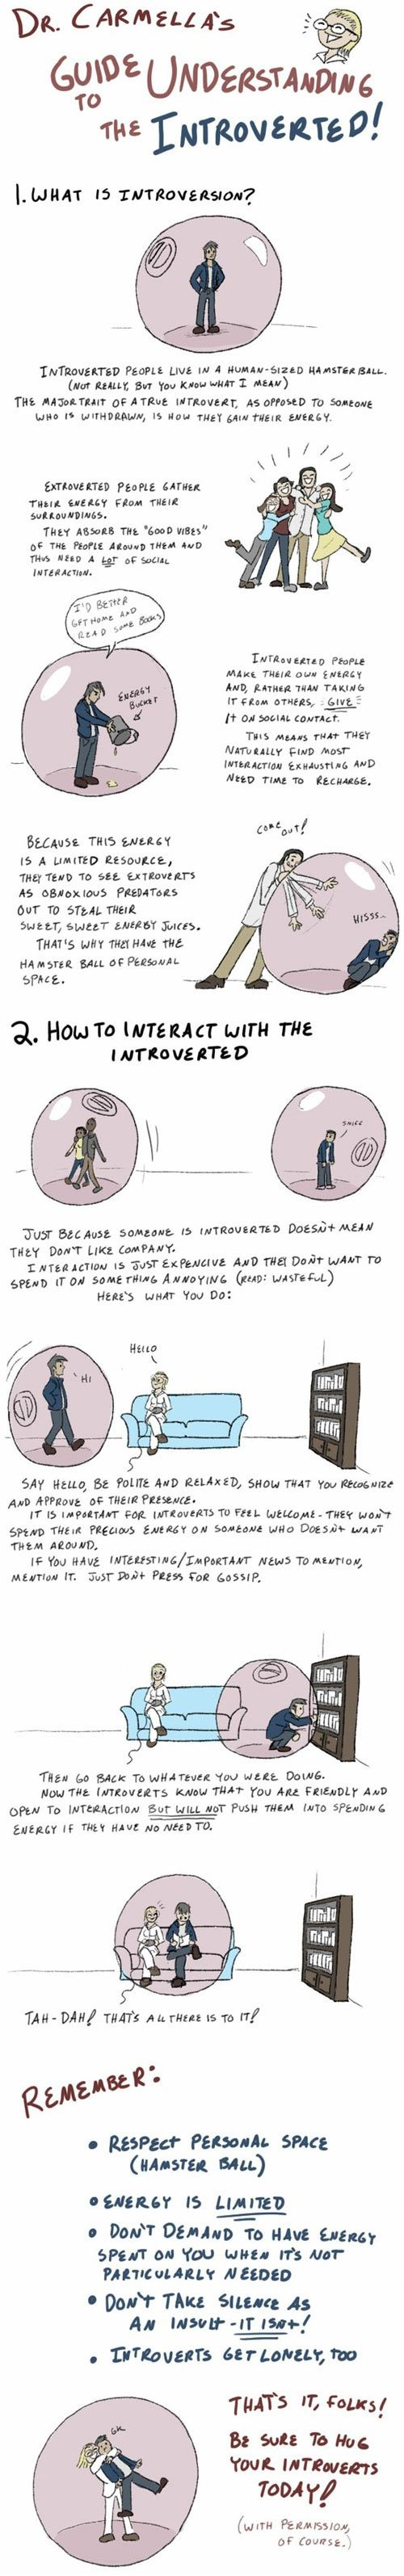 a guide to understanding introverts.